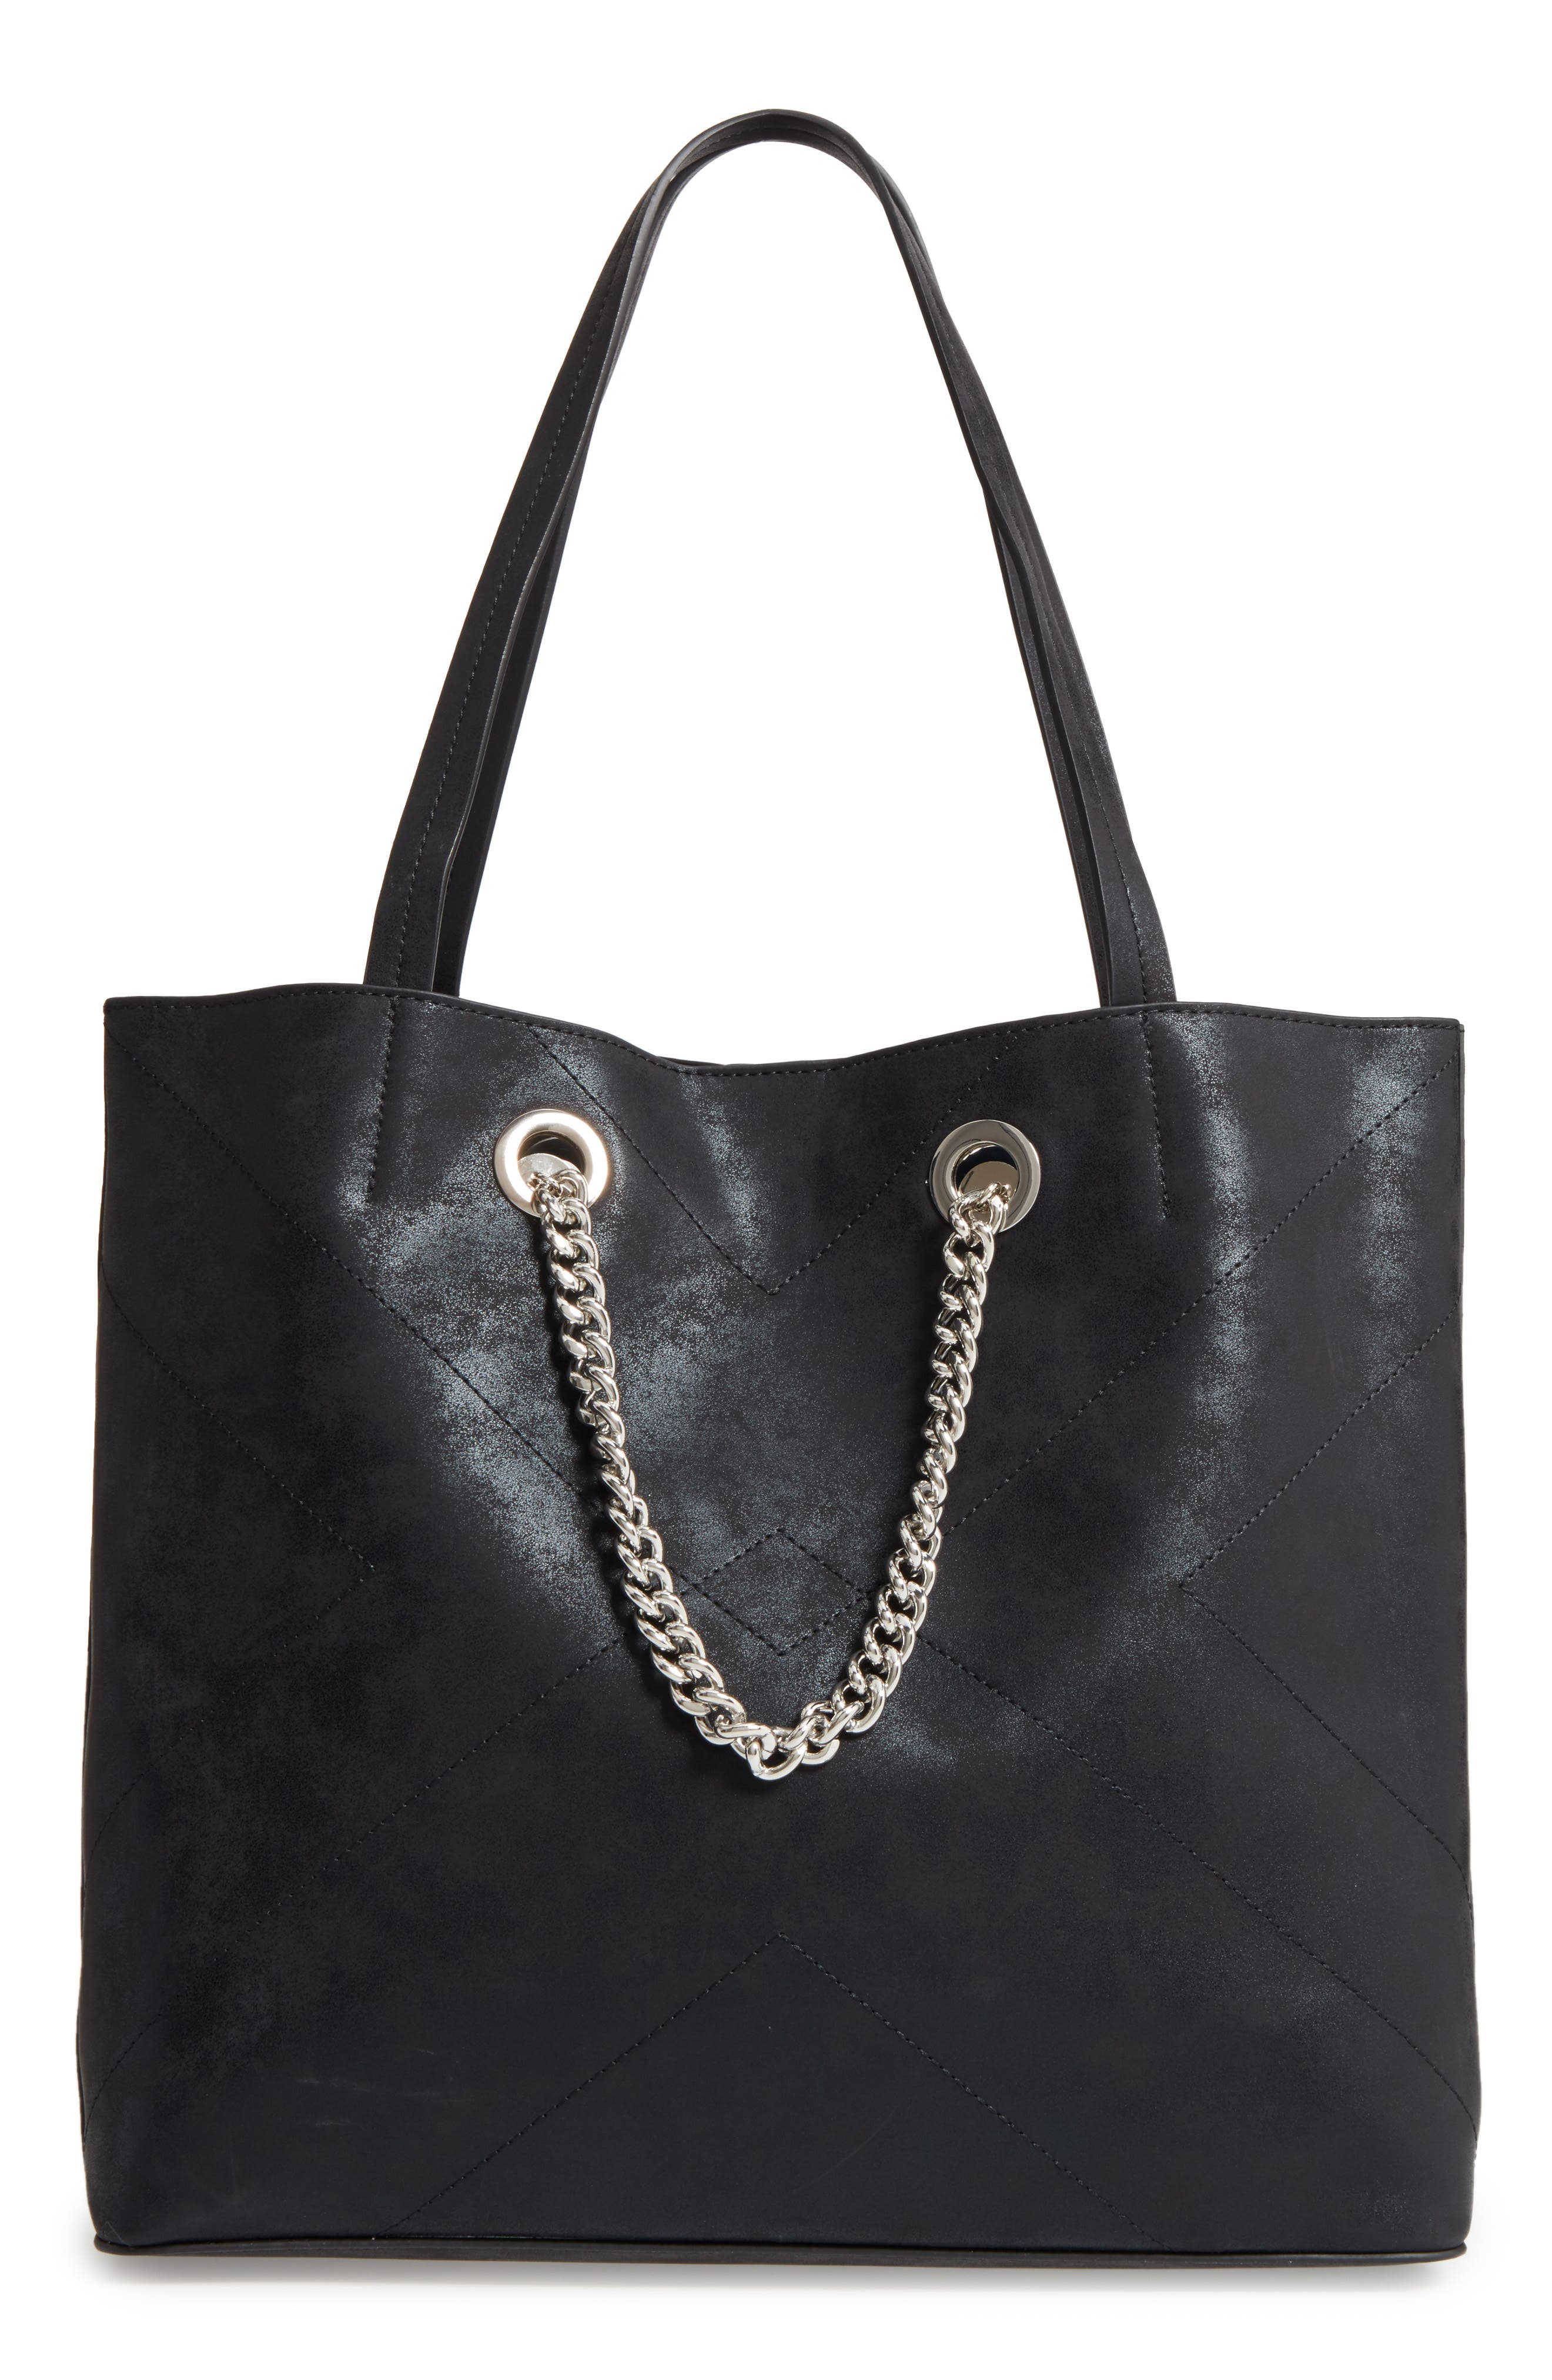 Alternate Image 1 Selected - Chelsea28 Dakota Chain Faux Leather Tote